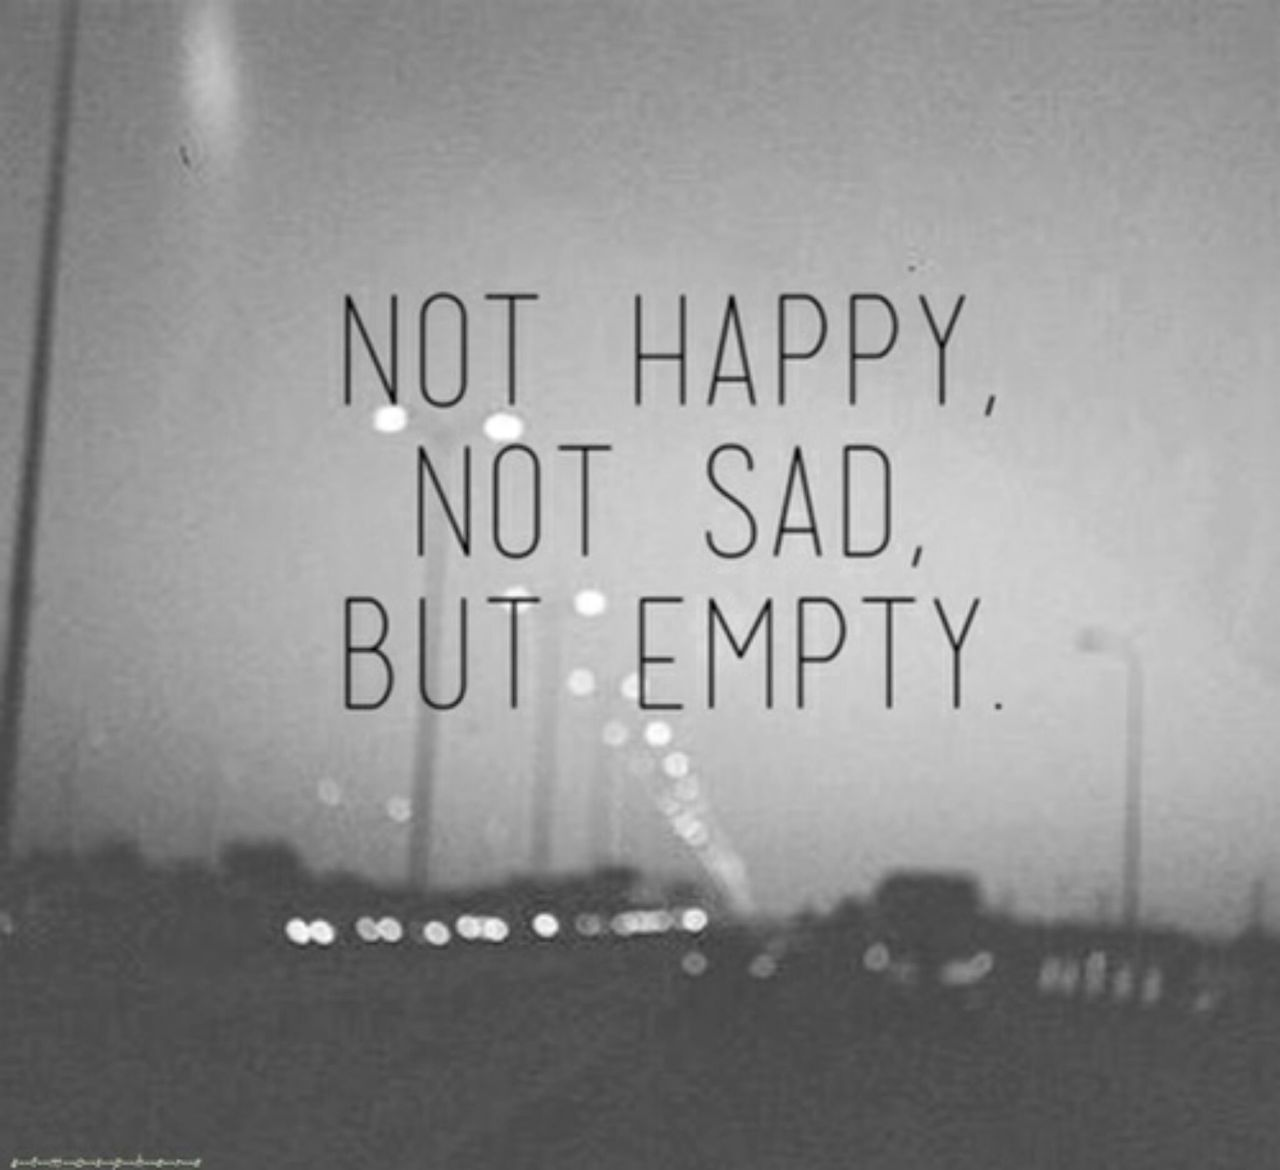 Quotes about emptiness i feel empty 50 quotes altavistaventures Image collections